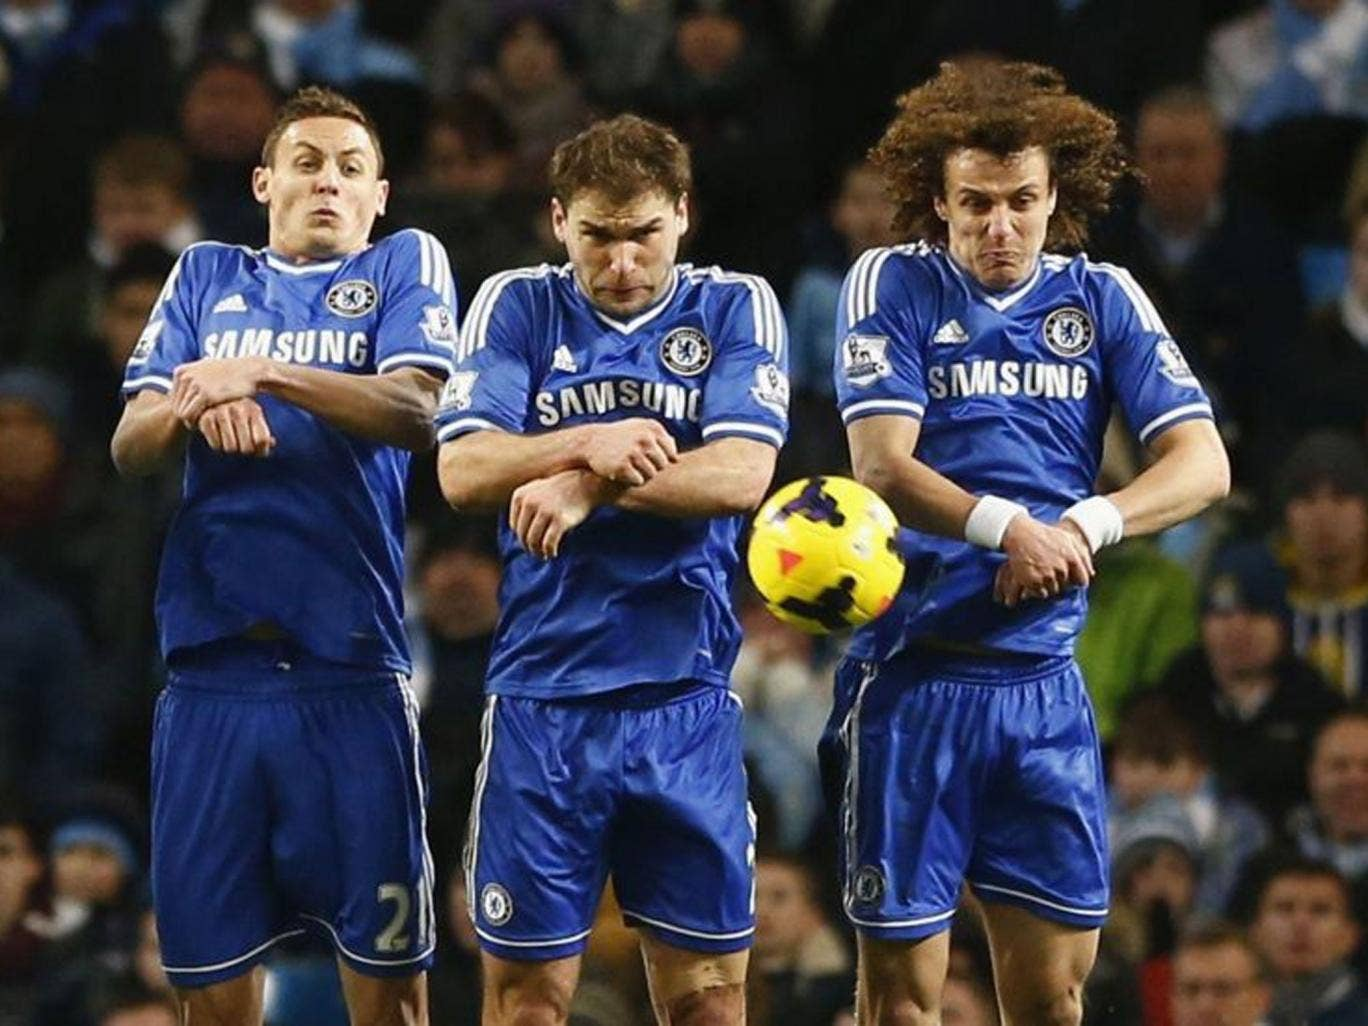 From left: Chelsea's Nemanja Matic, goalscorer Branislav Ivanovic and David Luiz show the collective spirit that led their side to victory over Manchester City last night